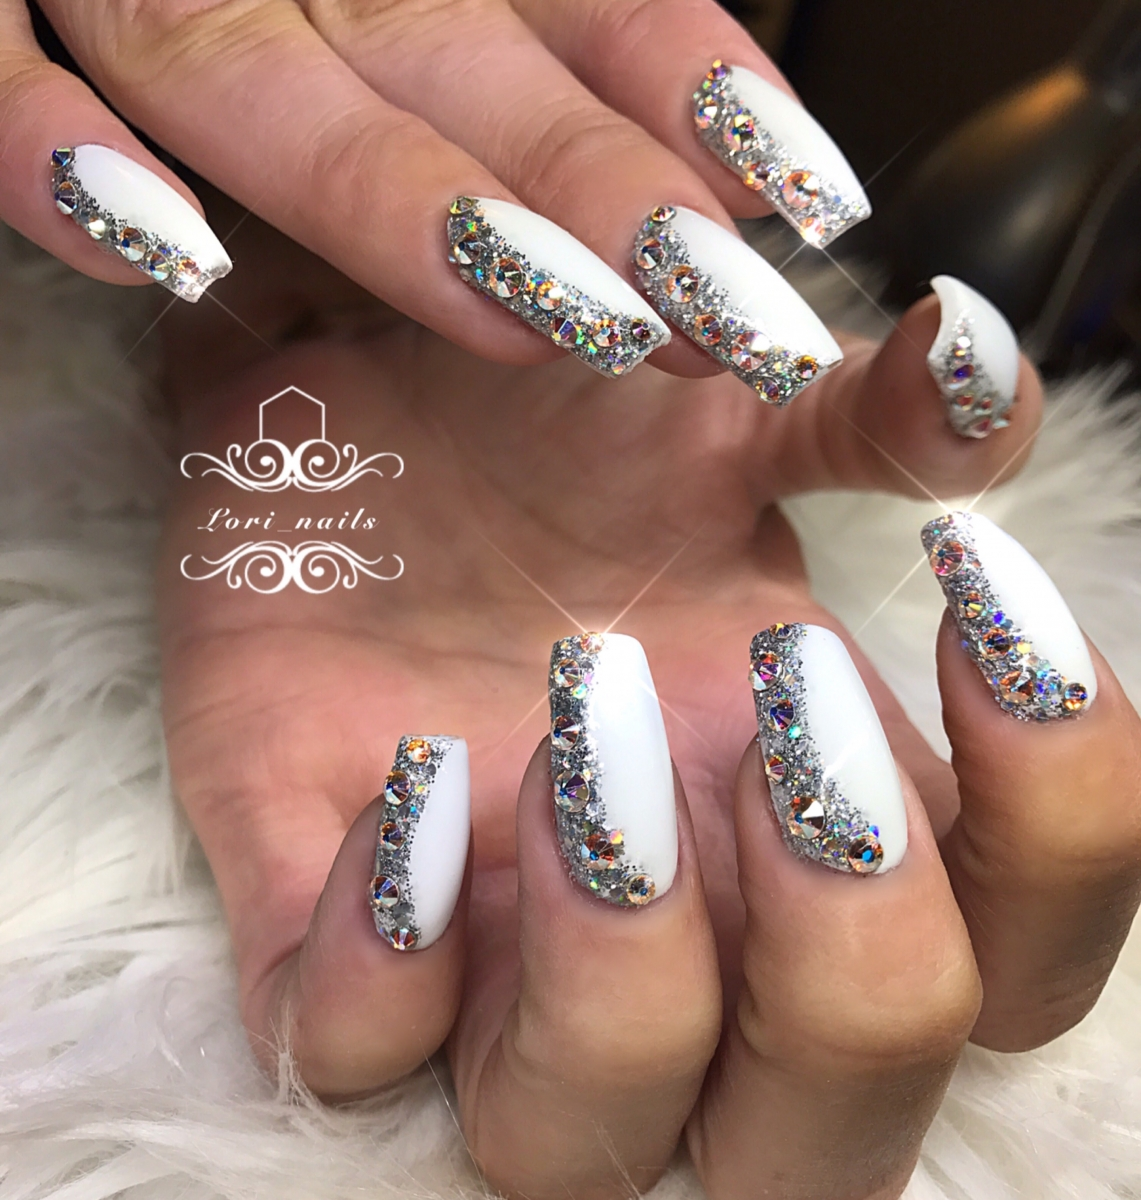 white-nails-with-glitter-and-swarovski-crystals